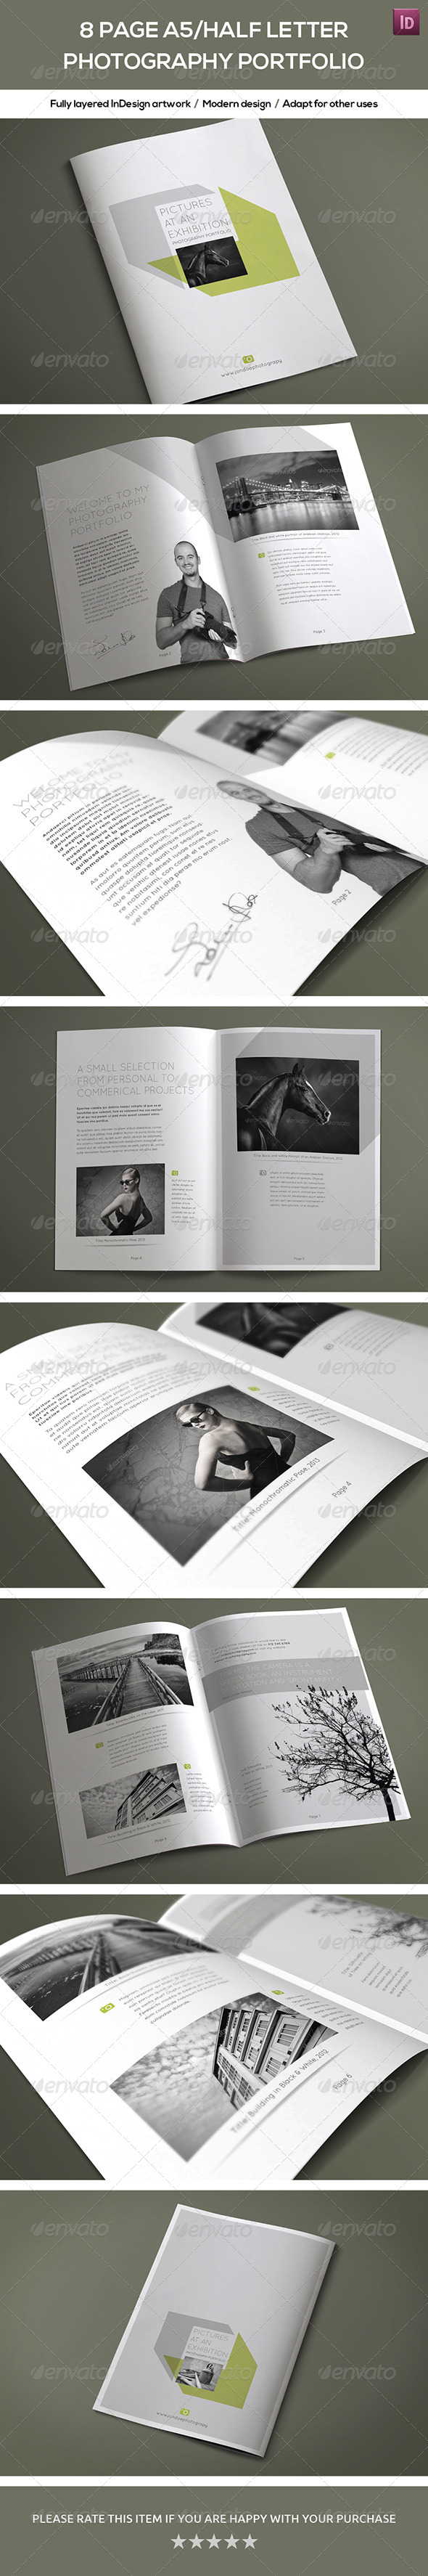 GraphicRiver 8 Page A5 Half Letter Photography Portfolio 7821445